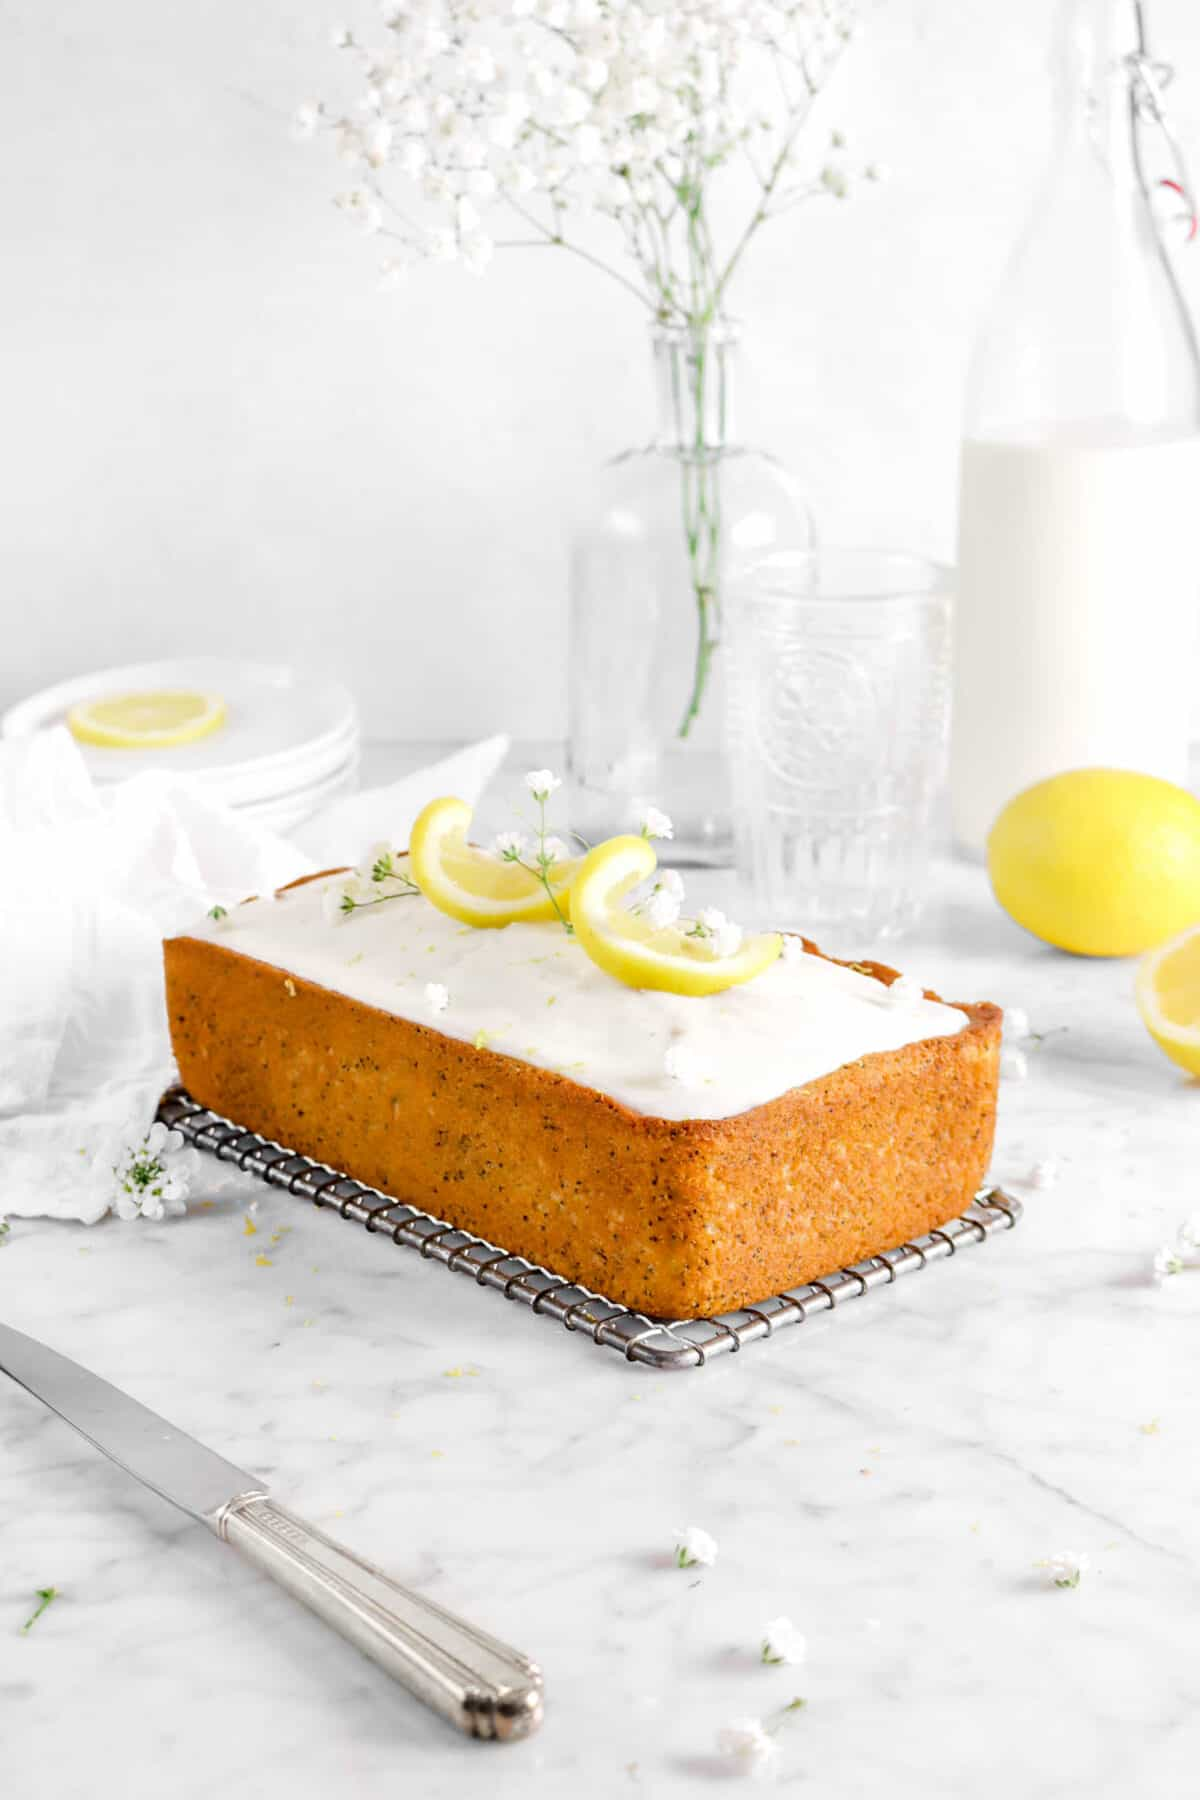 lemon poppy seed bread on wire cooling rack with lemon twists, flowers, a knife, jug of milk, a glass, plates, and vase behind